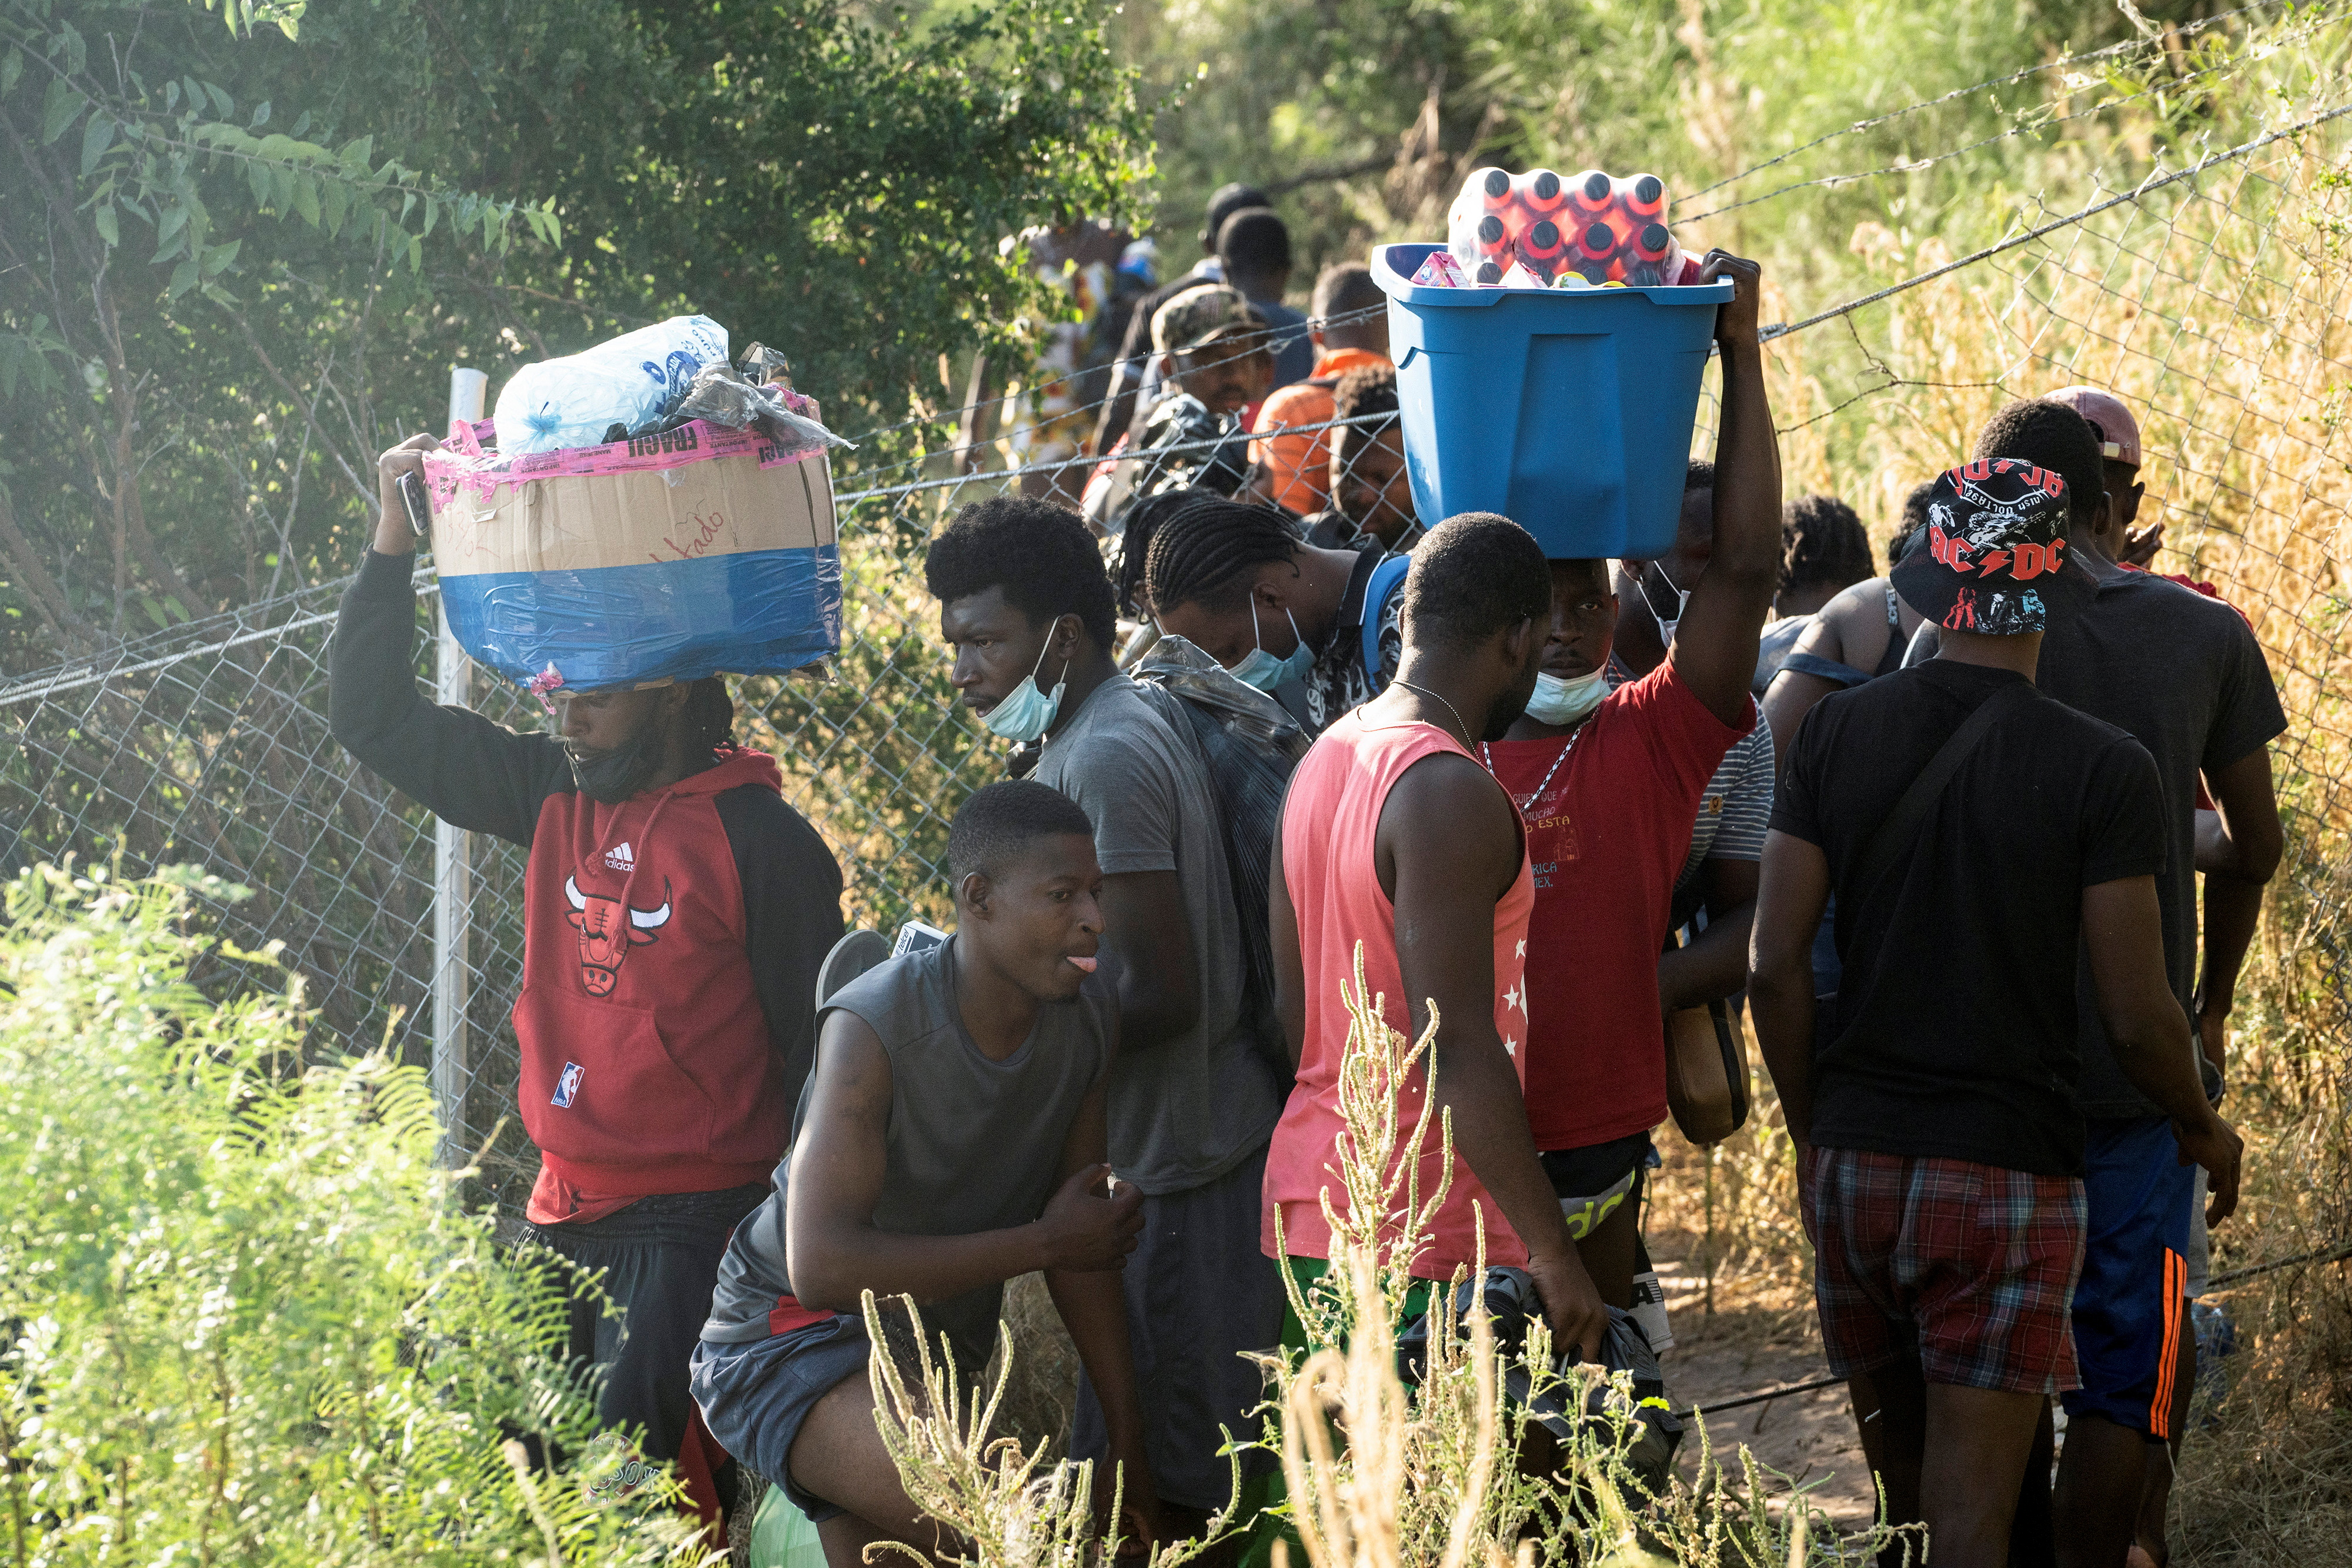 Migrants seeking asylum in the U.S. carry food and supplies as they wait to be processed, in Ciudad Acuna, Mexico, September 16, 2021. According to officials, some migrants cross back and forth into Mexico to buy food and supplies. REUTERS/Go Nakamura